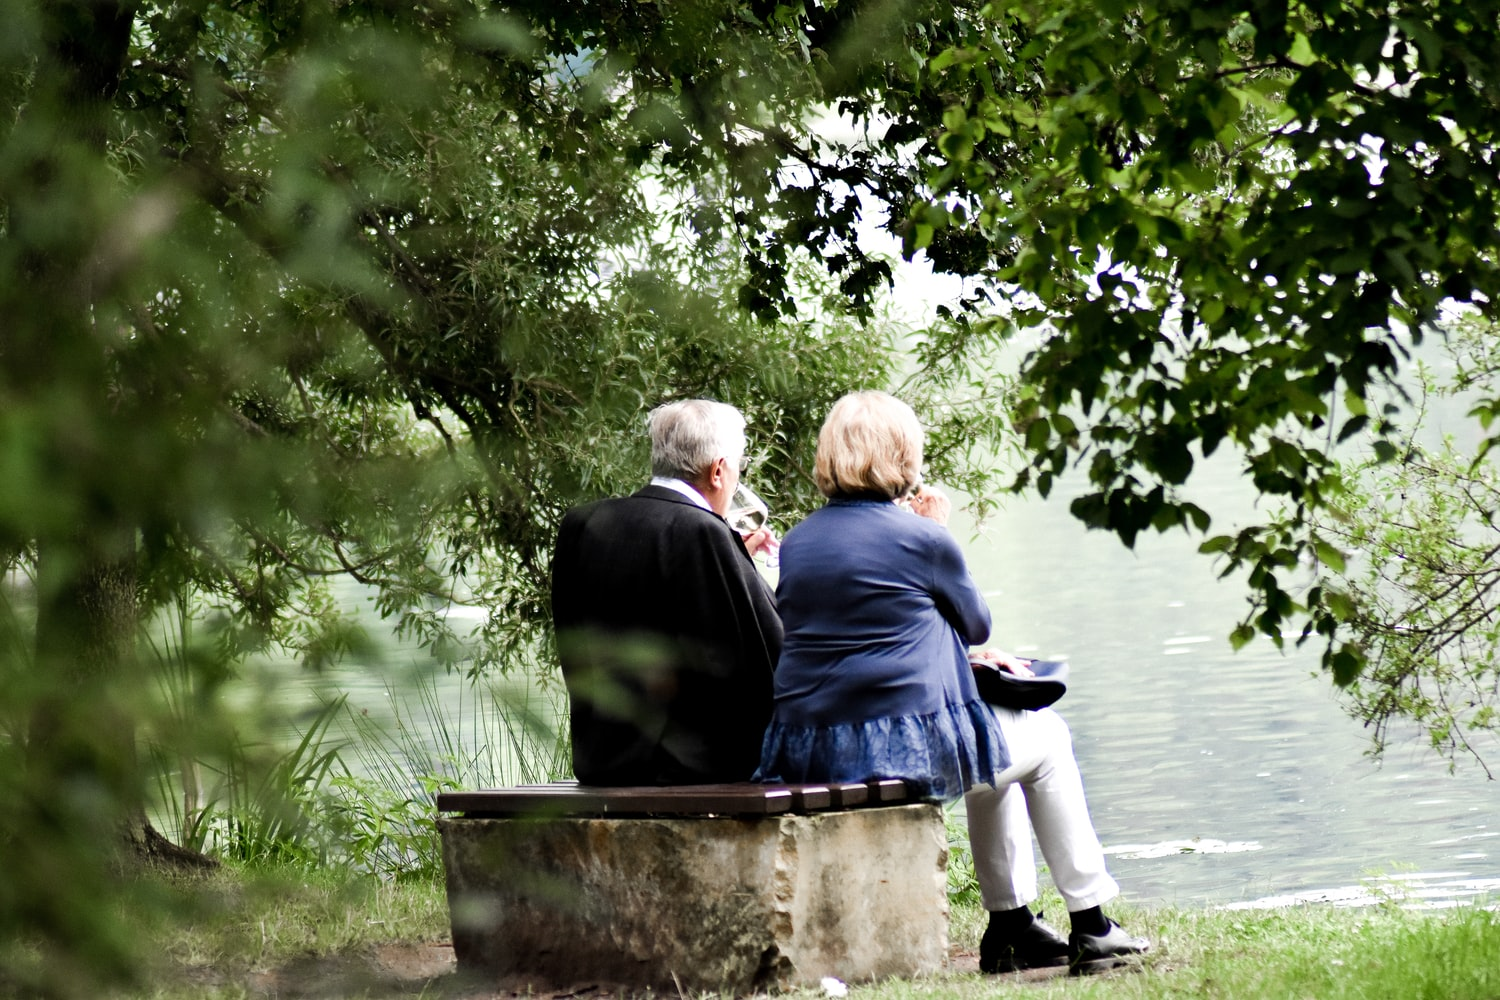 Celebrate Grandparents Day by interviewing your grandparents